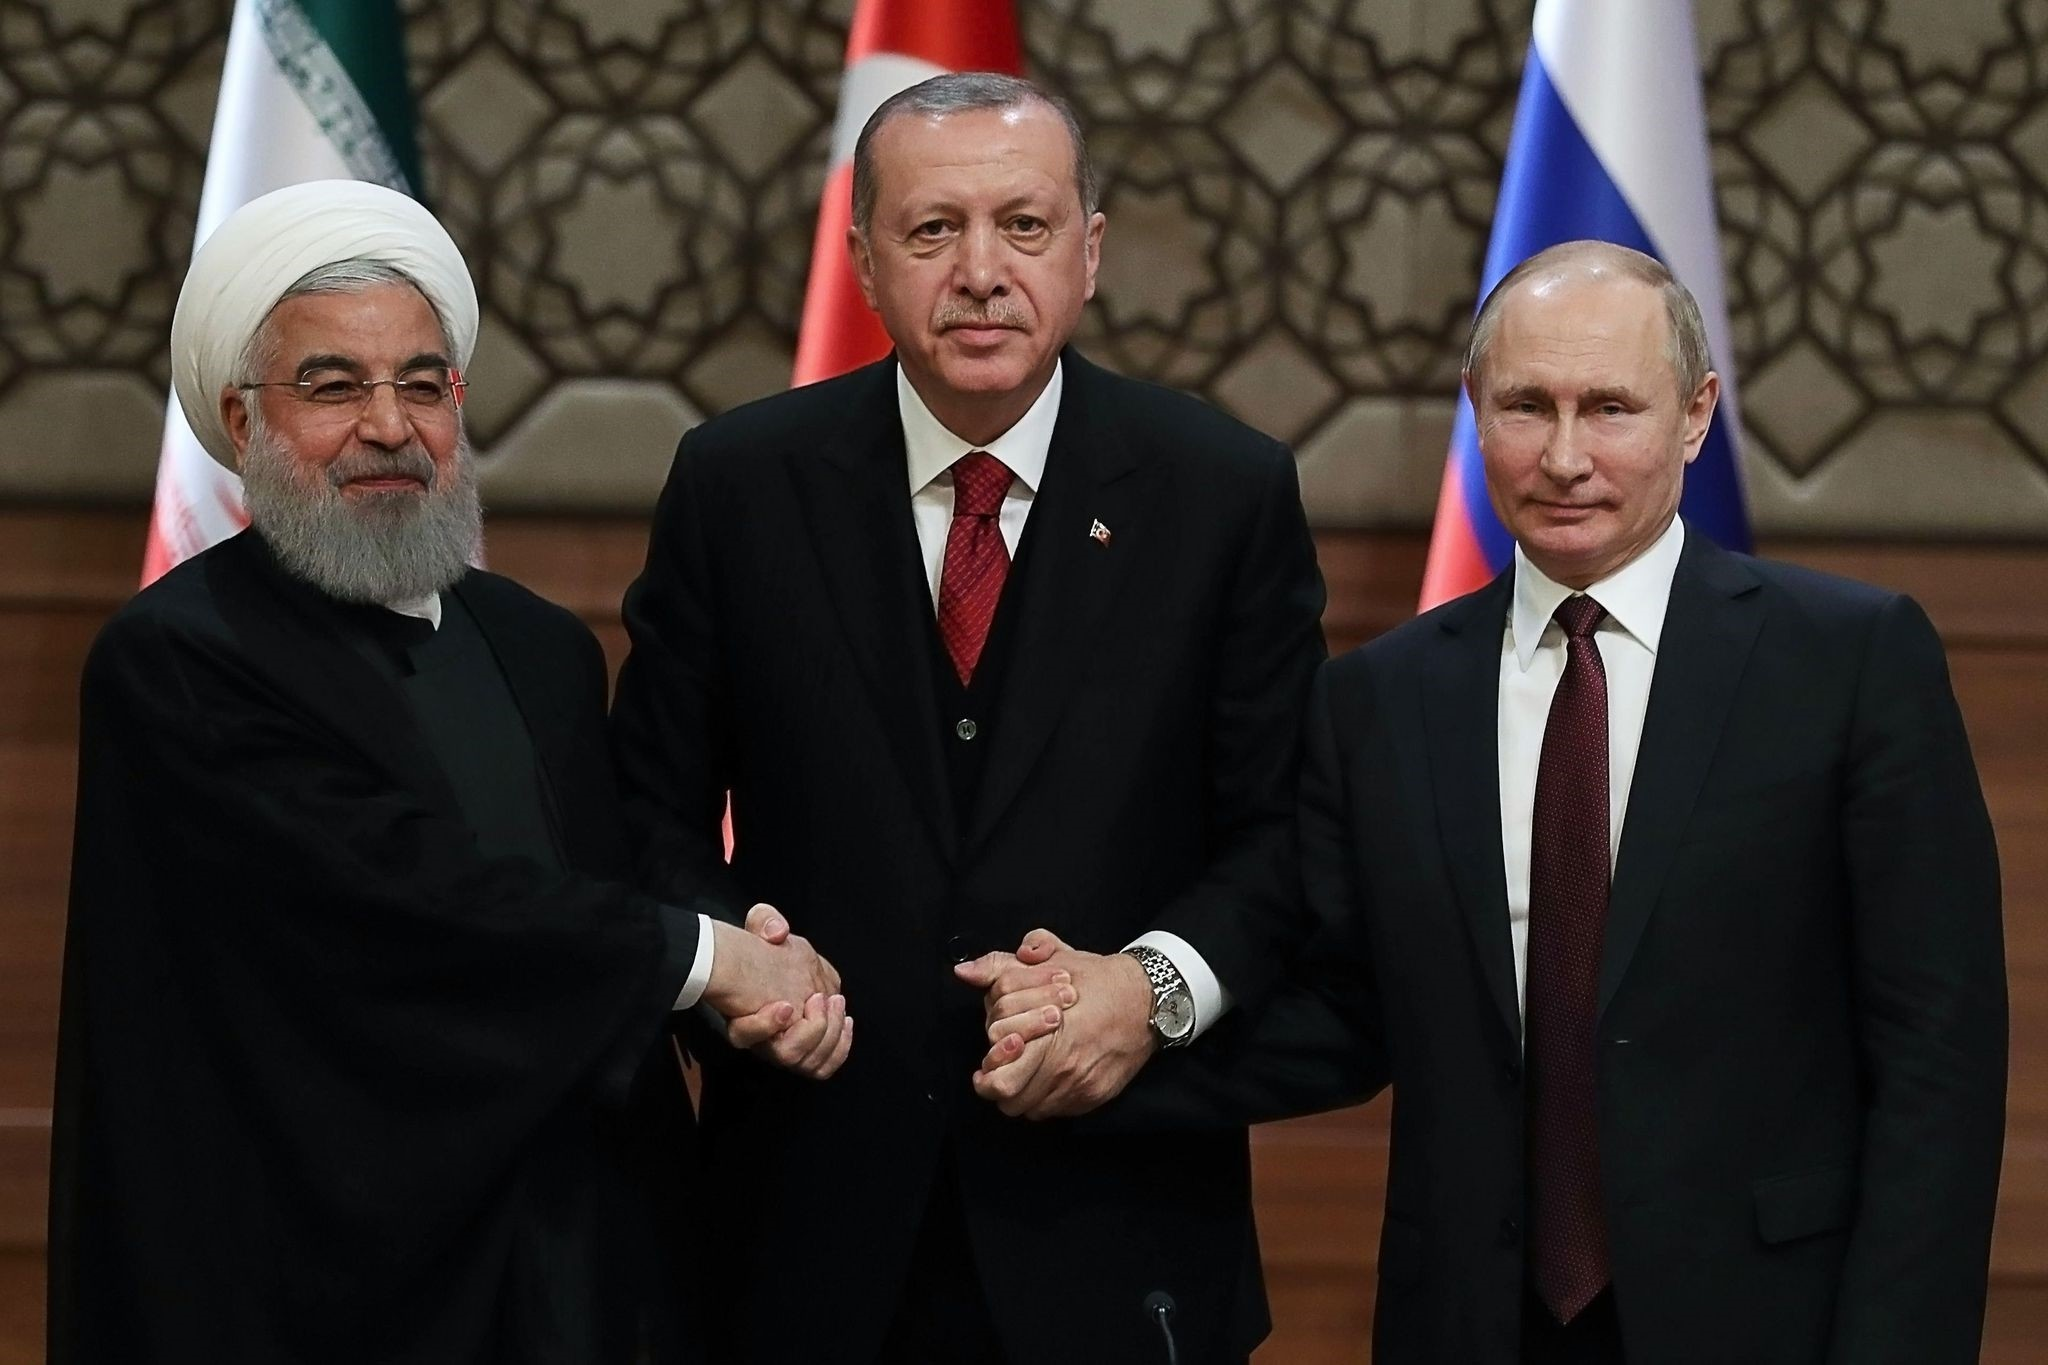 President Recep Tayyip Erdou011fan, Iran's President Hassan Rouhani, and Russia's President Vladimir Putin shake hands after a joint press conference as part of a tripartite summit on Syria, in Ankara, April 4.